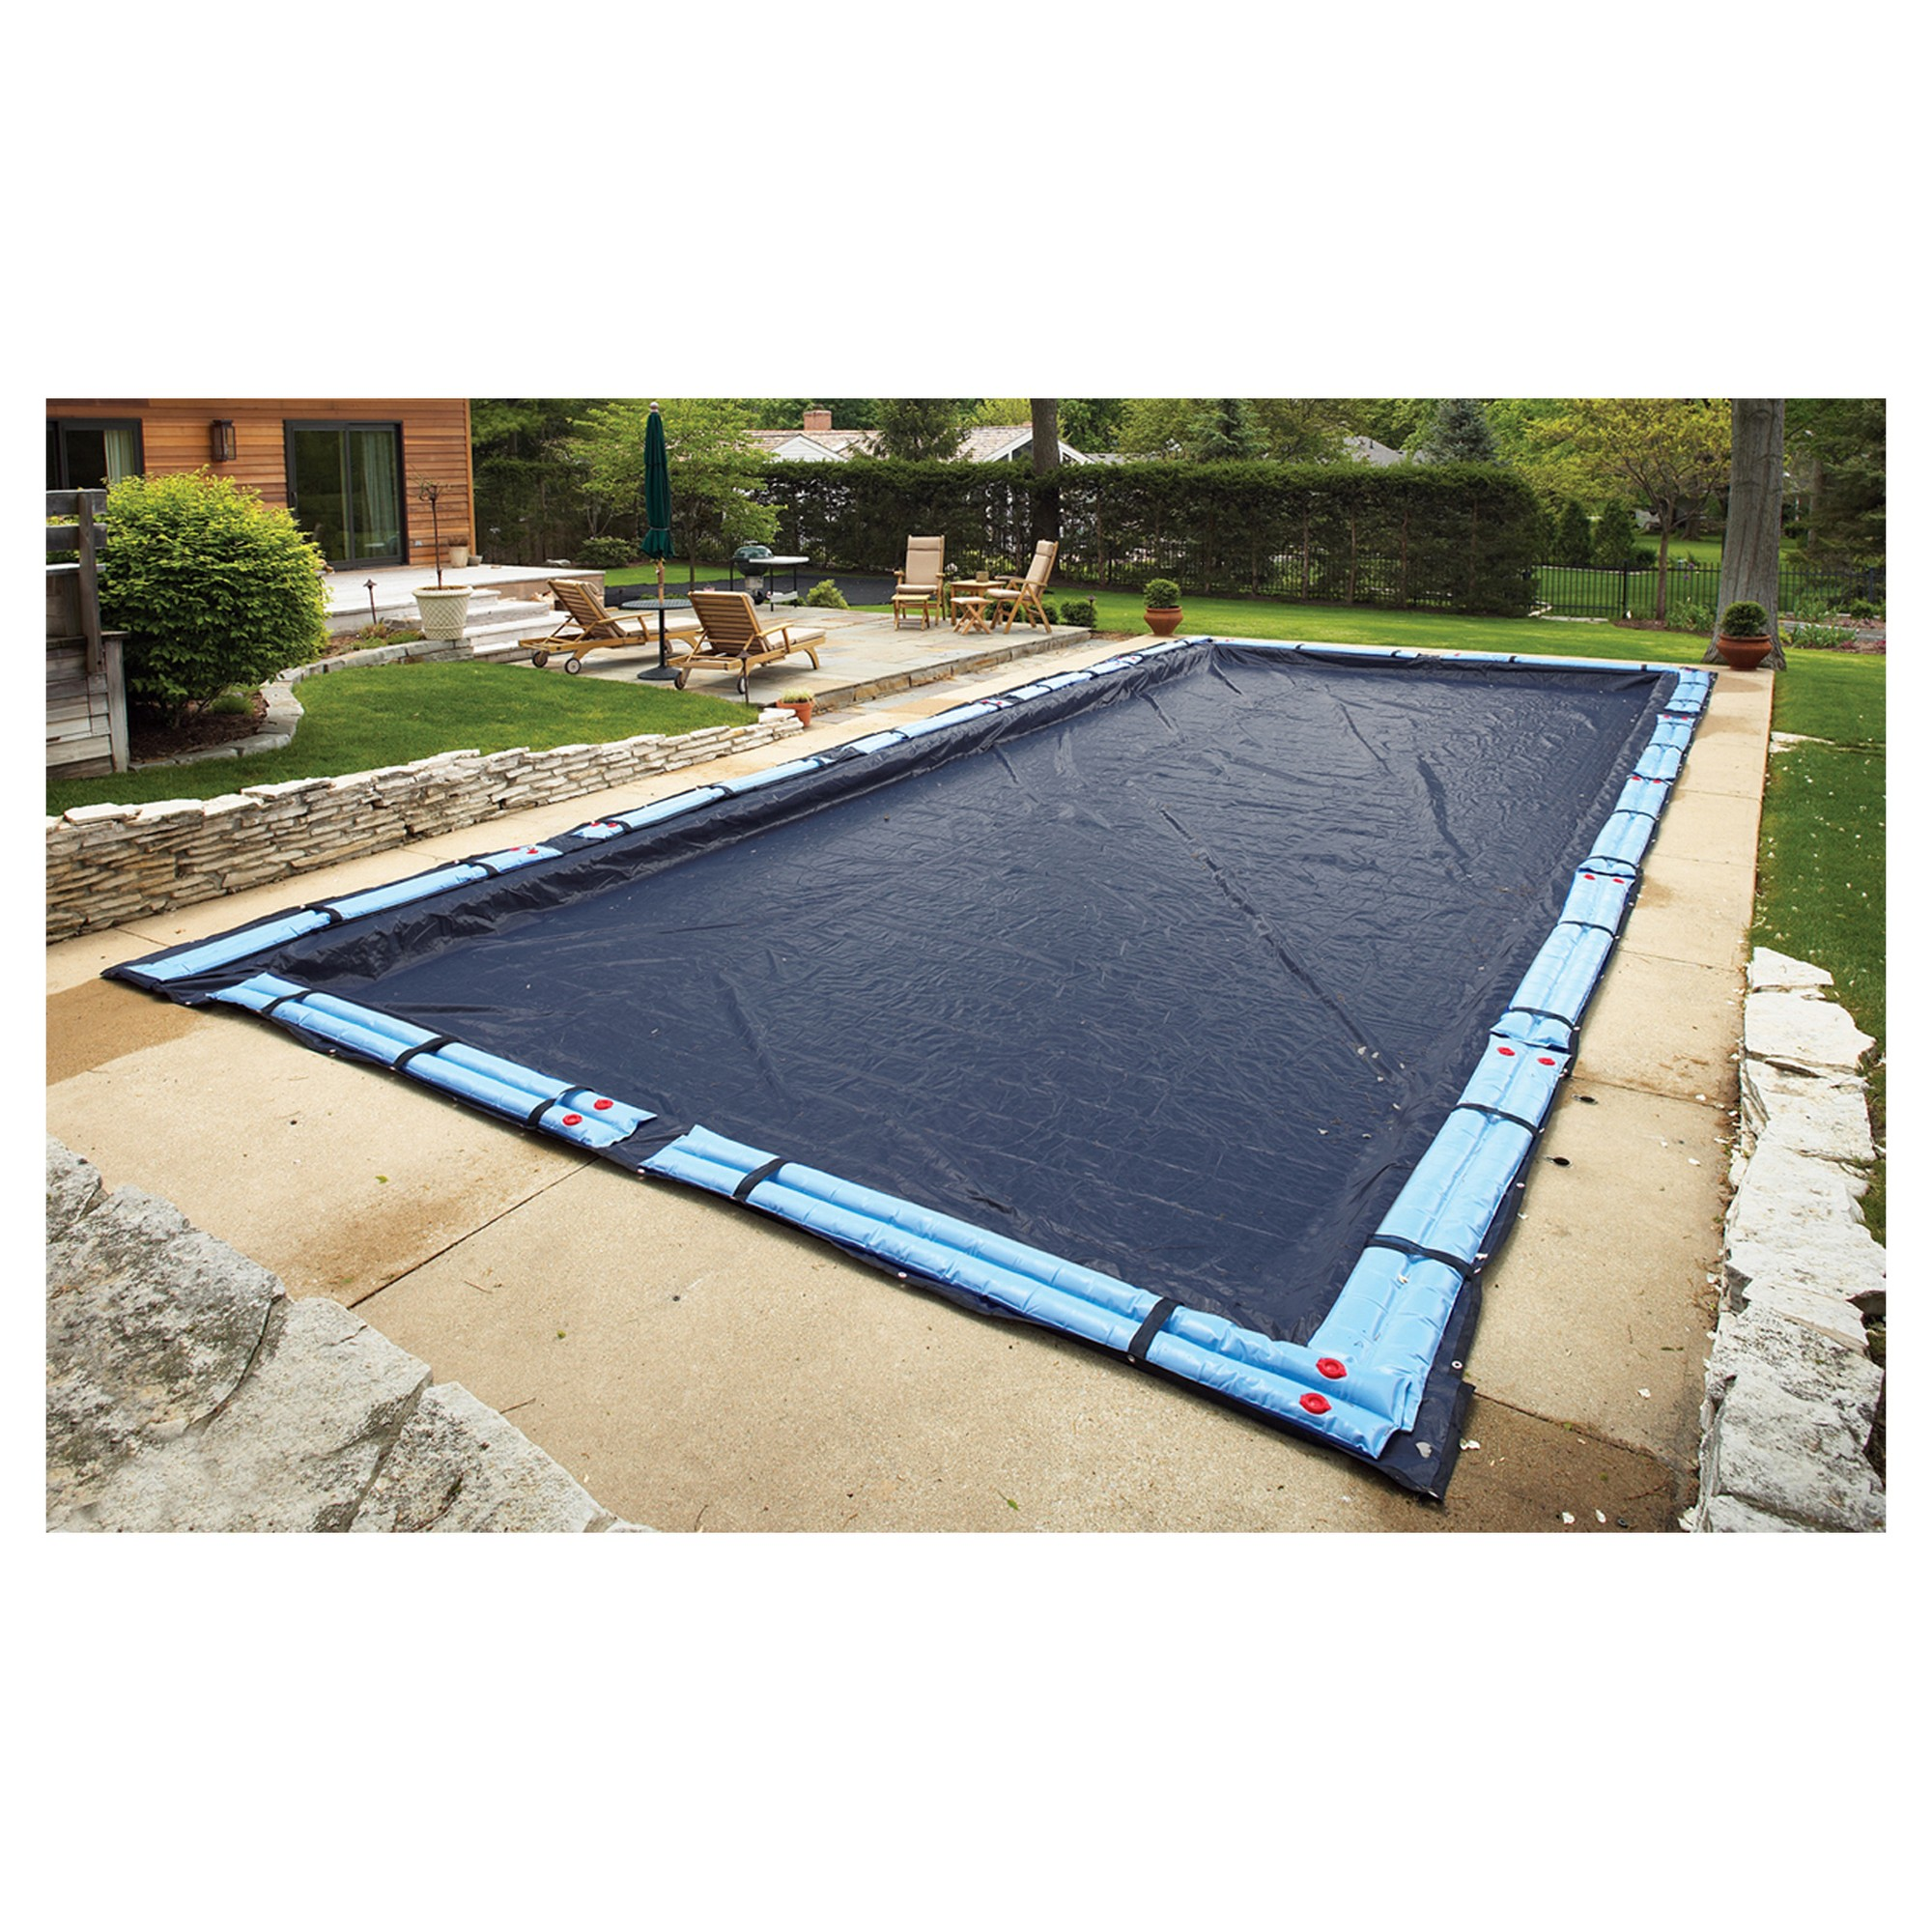 Above Ground Pool Winter Cover Arcticplex In Ground 20 X 44 Rectangular 8 Year Winter Cover